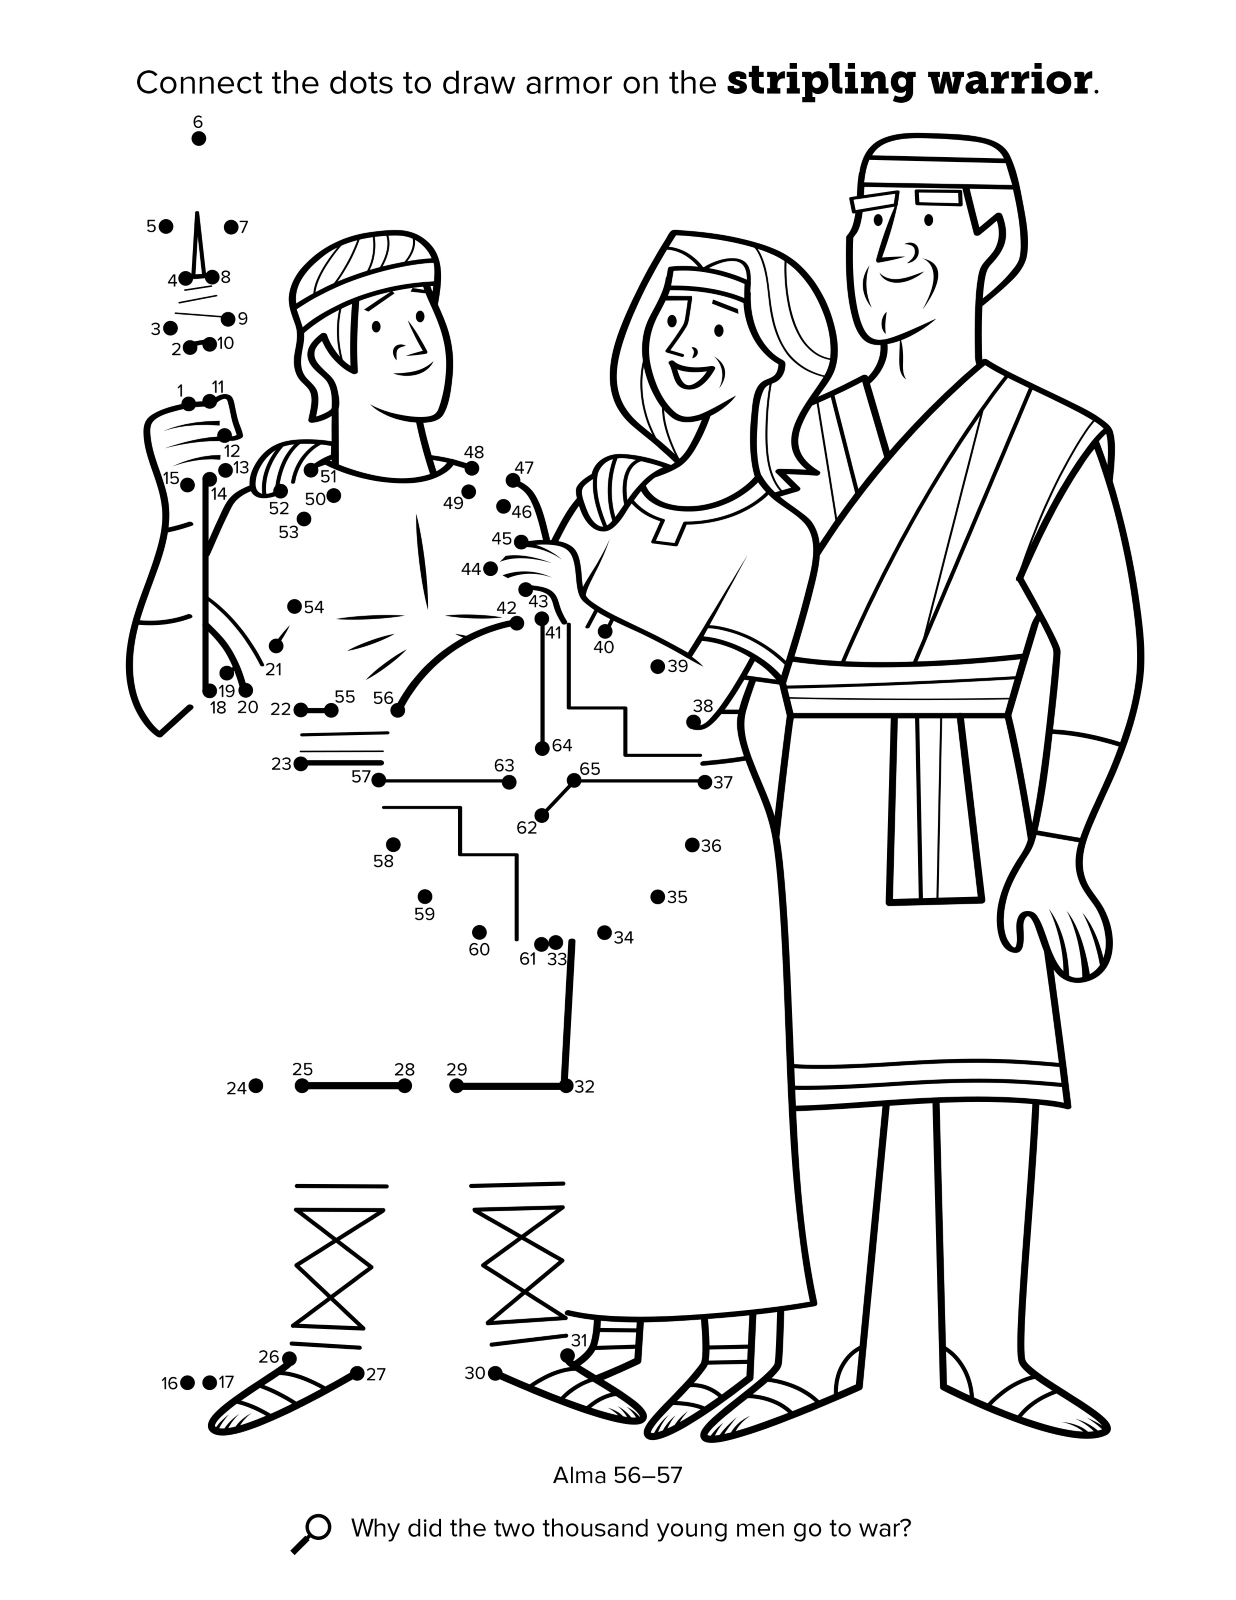 2000 stripling warriors coloring pages | Stripling Warrior